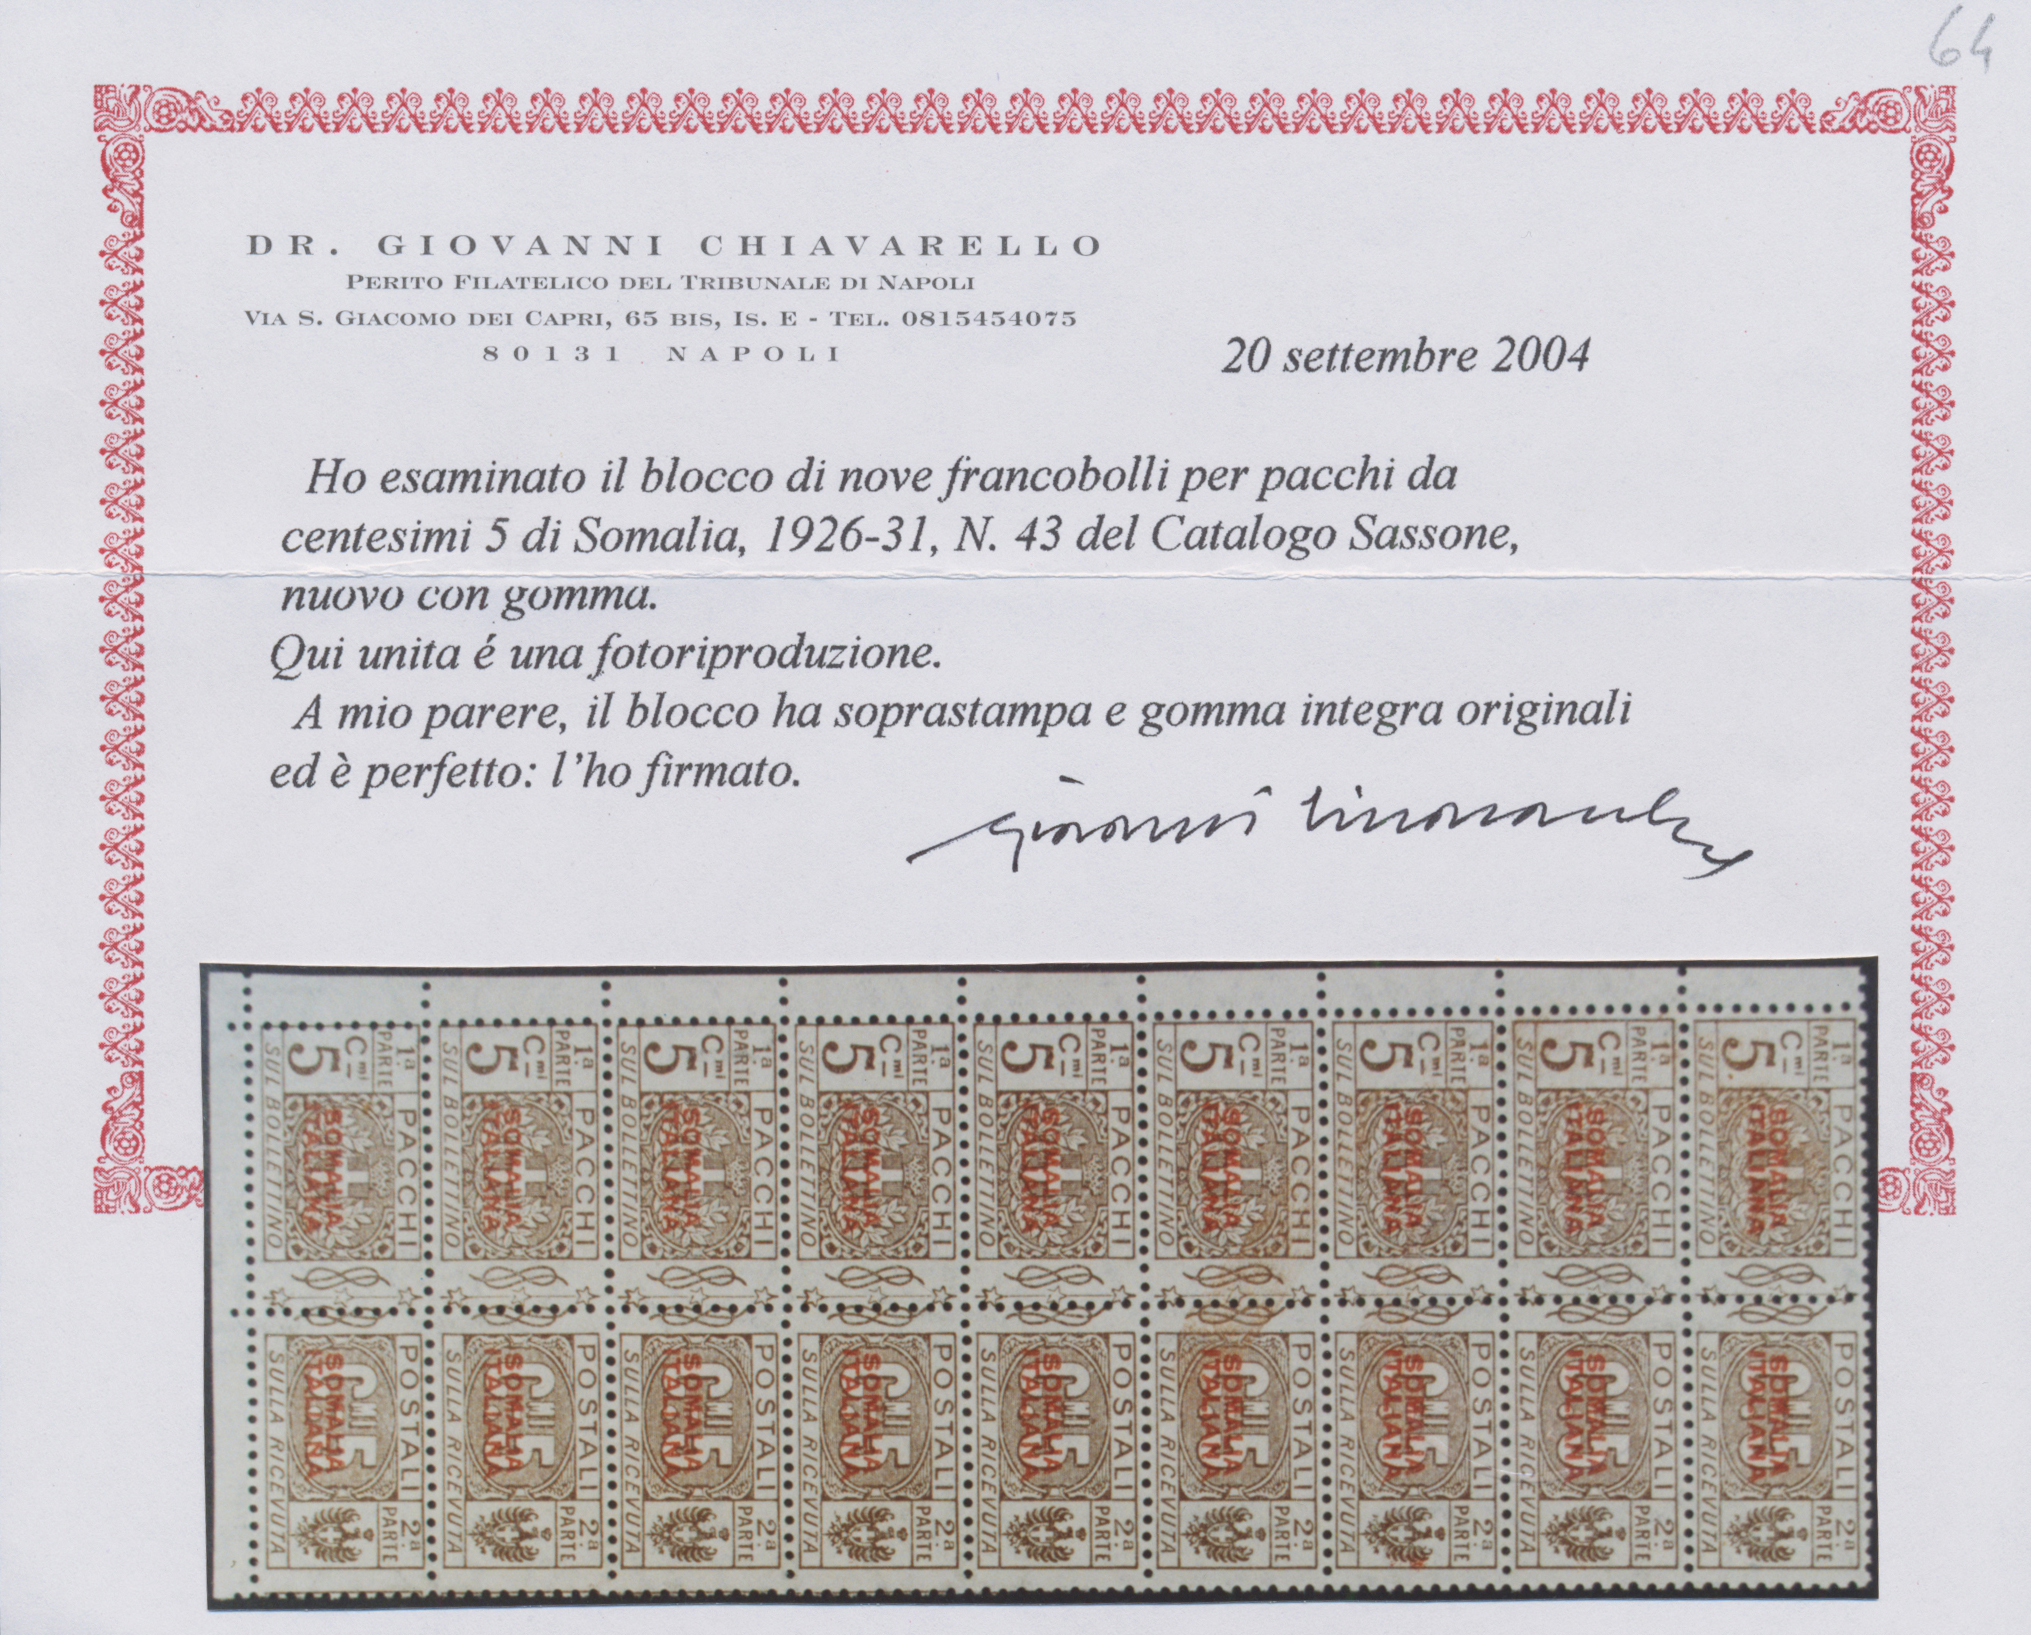 Lot 1066 - Italienisch-Somaliland - Paketmarken  -  Auktionshaus Christoph Gärtner GmbH & Co. KG Auction #41 Special auction part one